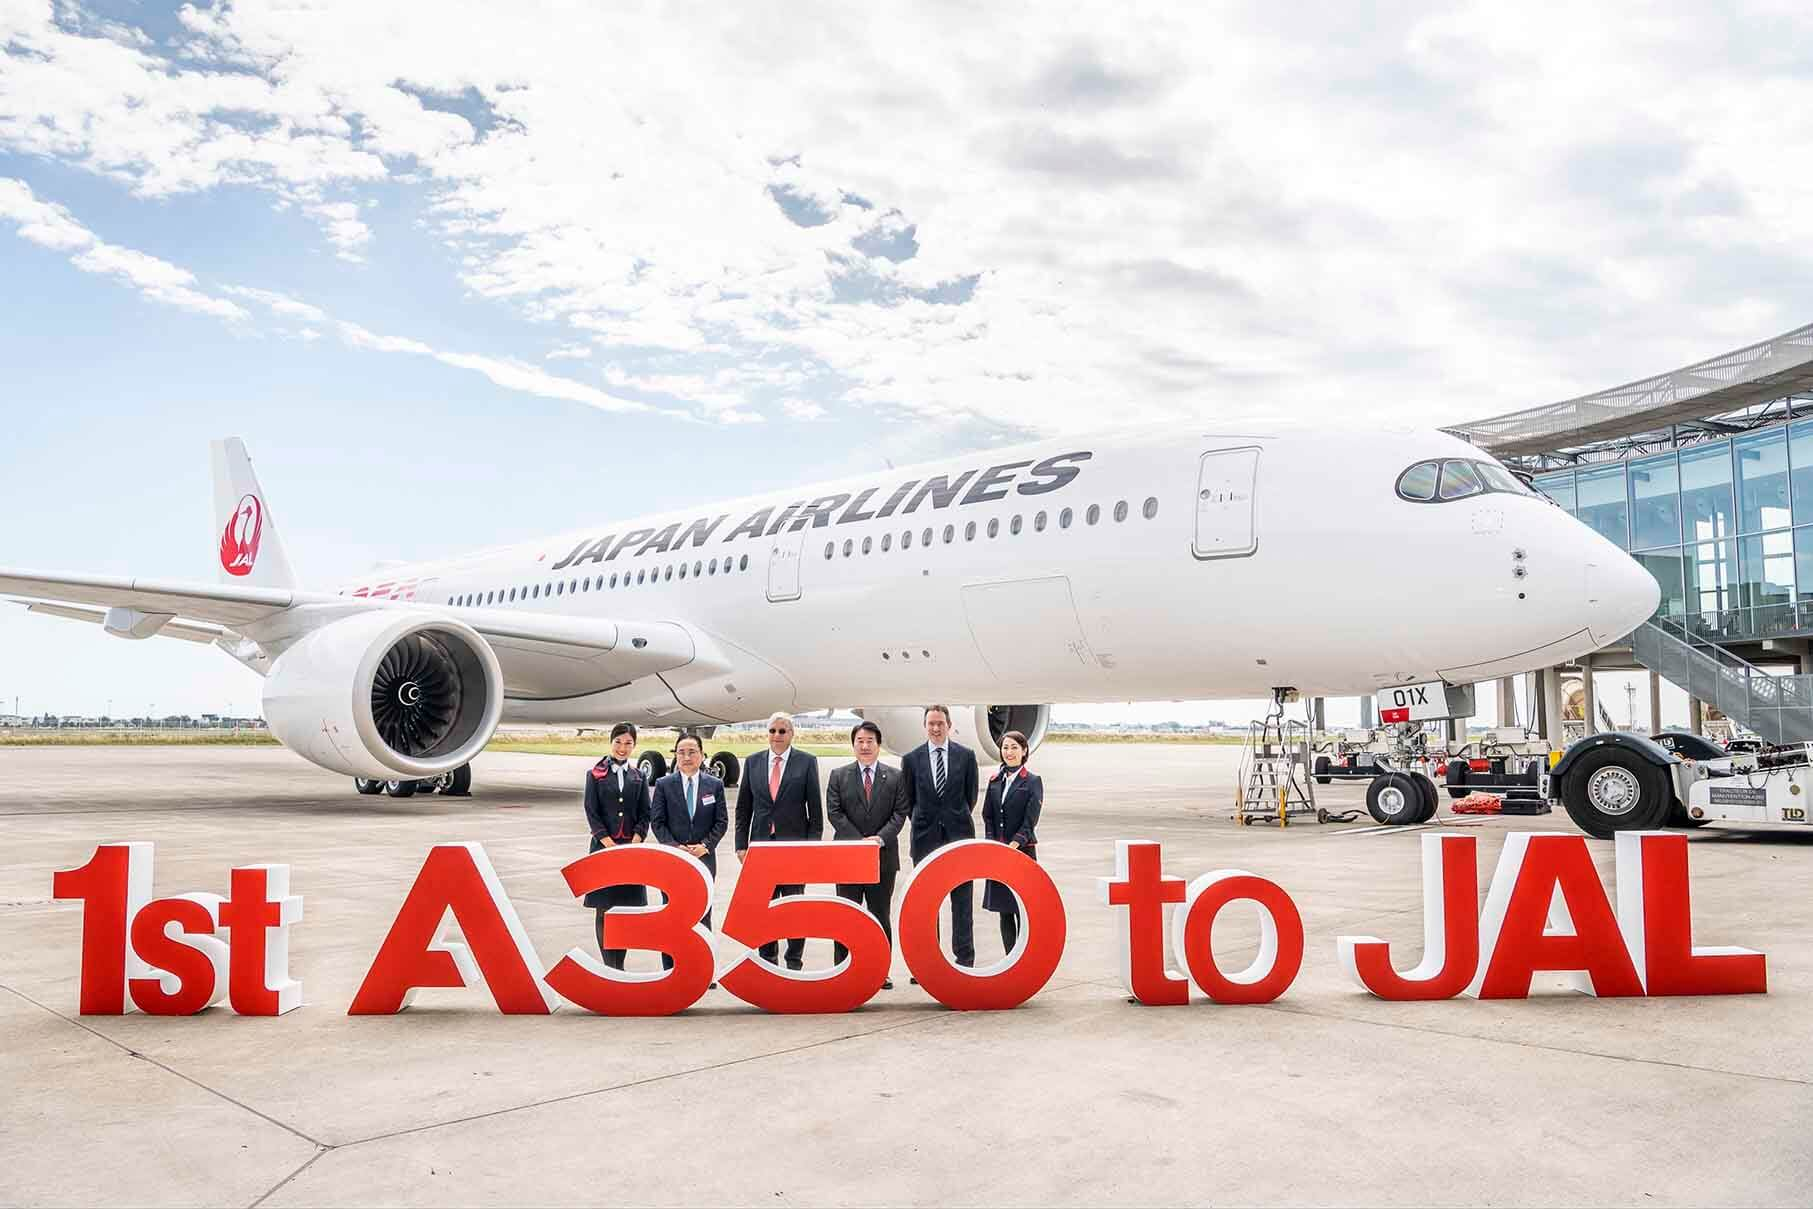 Japan Airlines takes delivery of first Airbus A350 XWB